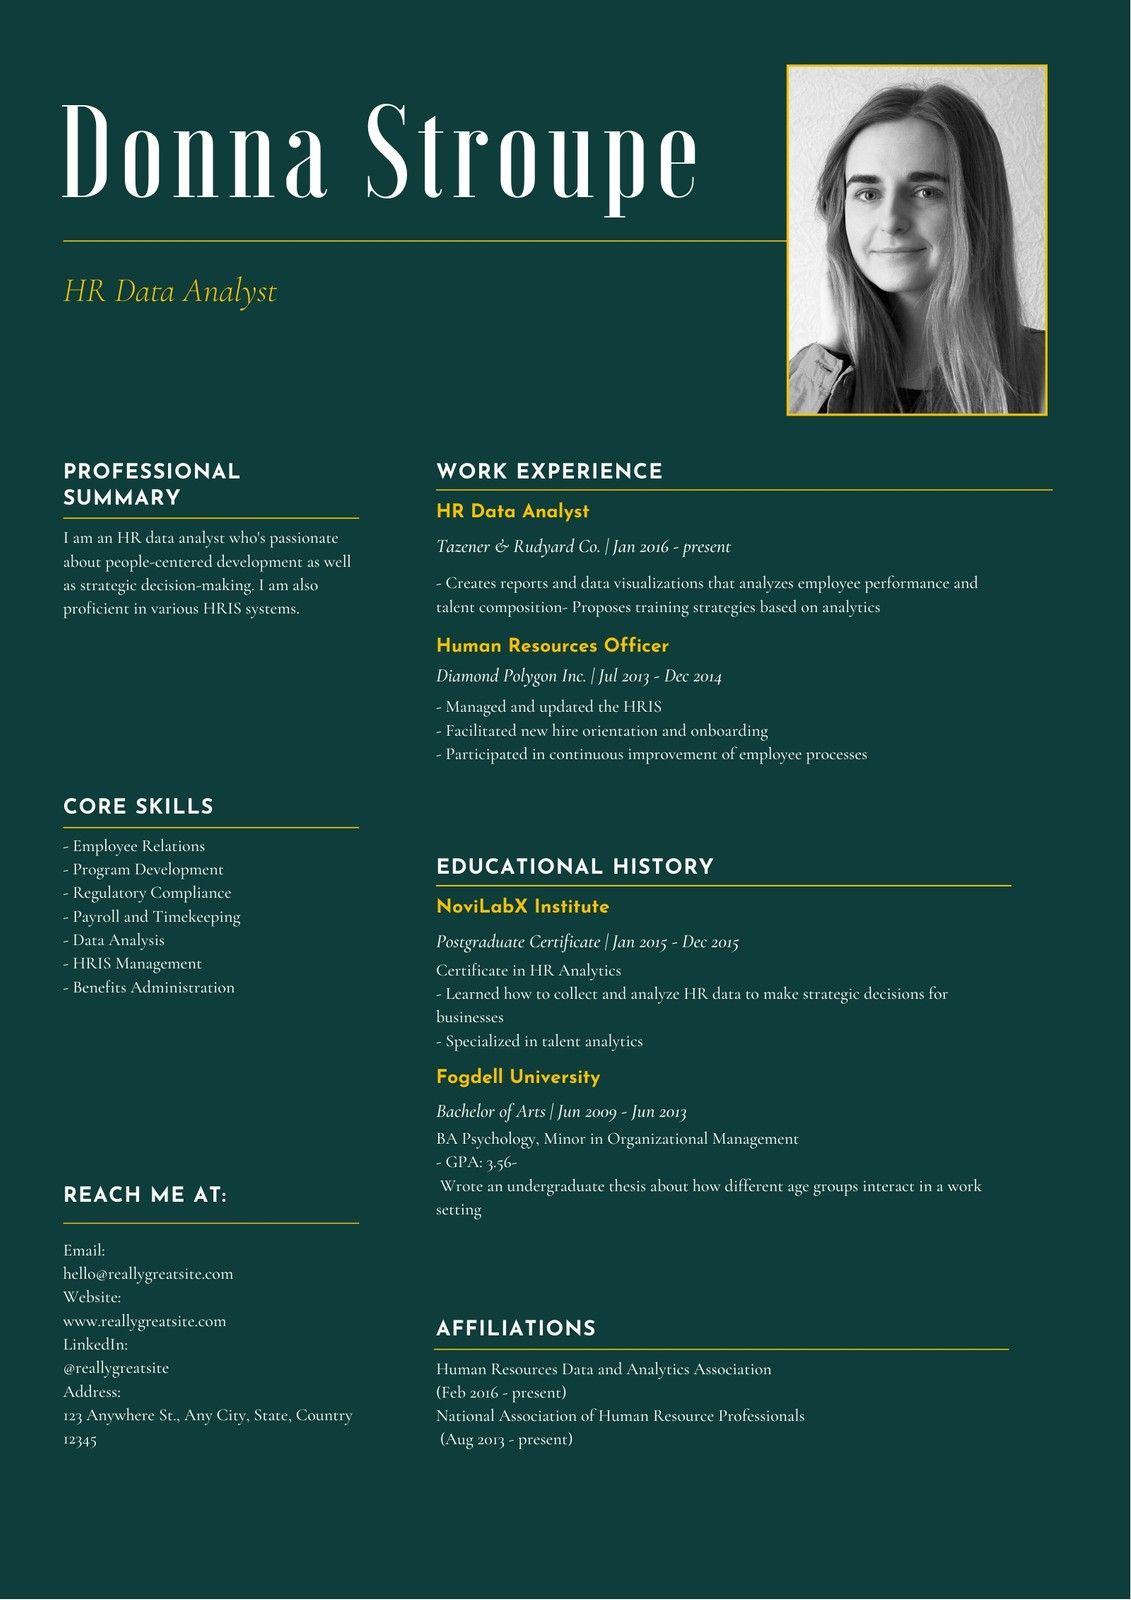 Green And Yellow Corporate Hr Analytics Specialist Resume Templates By Canva Ad Corporate Paid Hr Green Data Visualization Resume Templates Resume